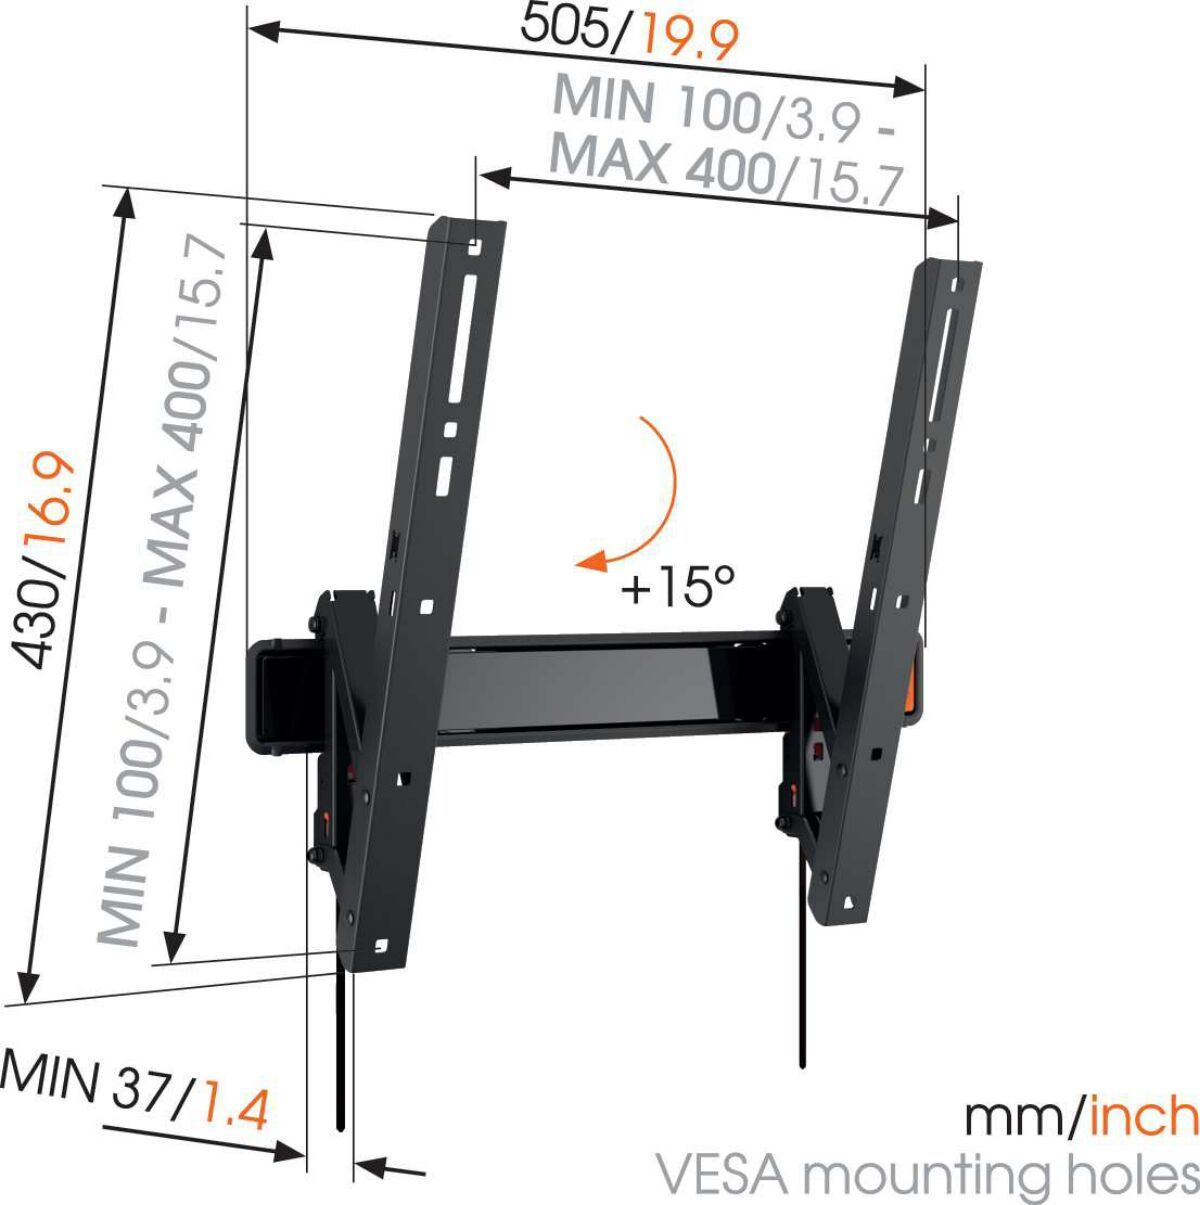 Vogel's WALL 3215 Tilting TV Wall Mount - Suitable for 32 up to 55 inch TVs up to 30 kg - Tilt up to 15° - Dimensions